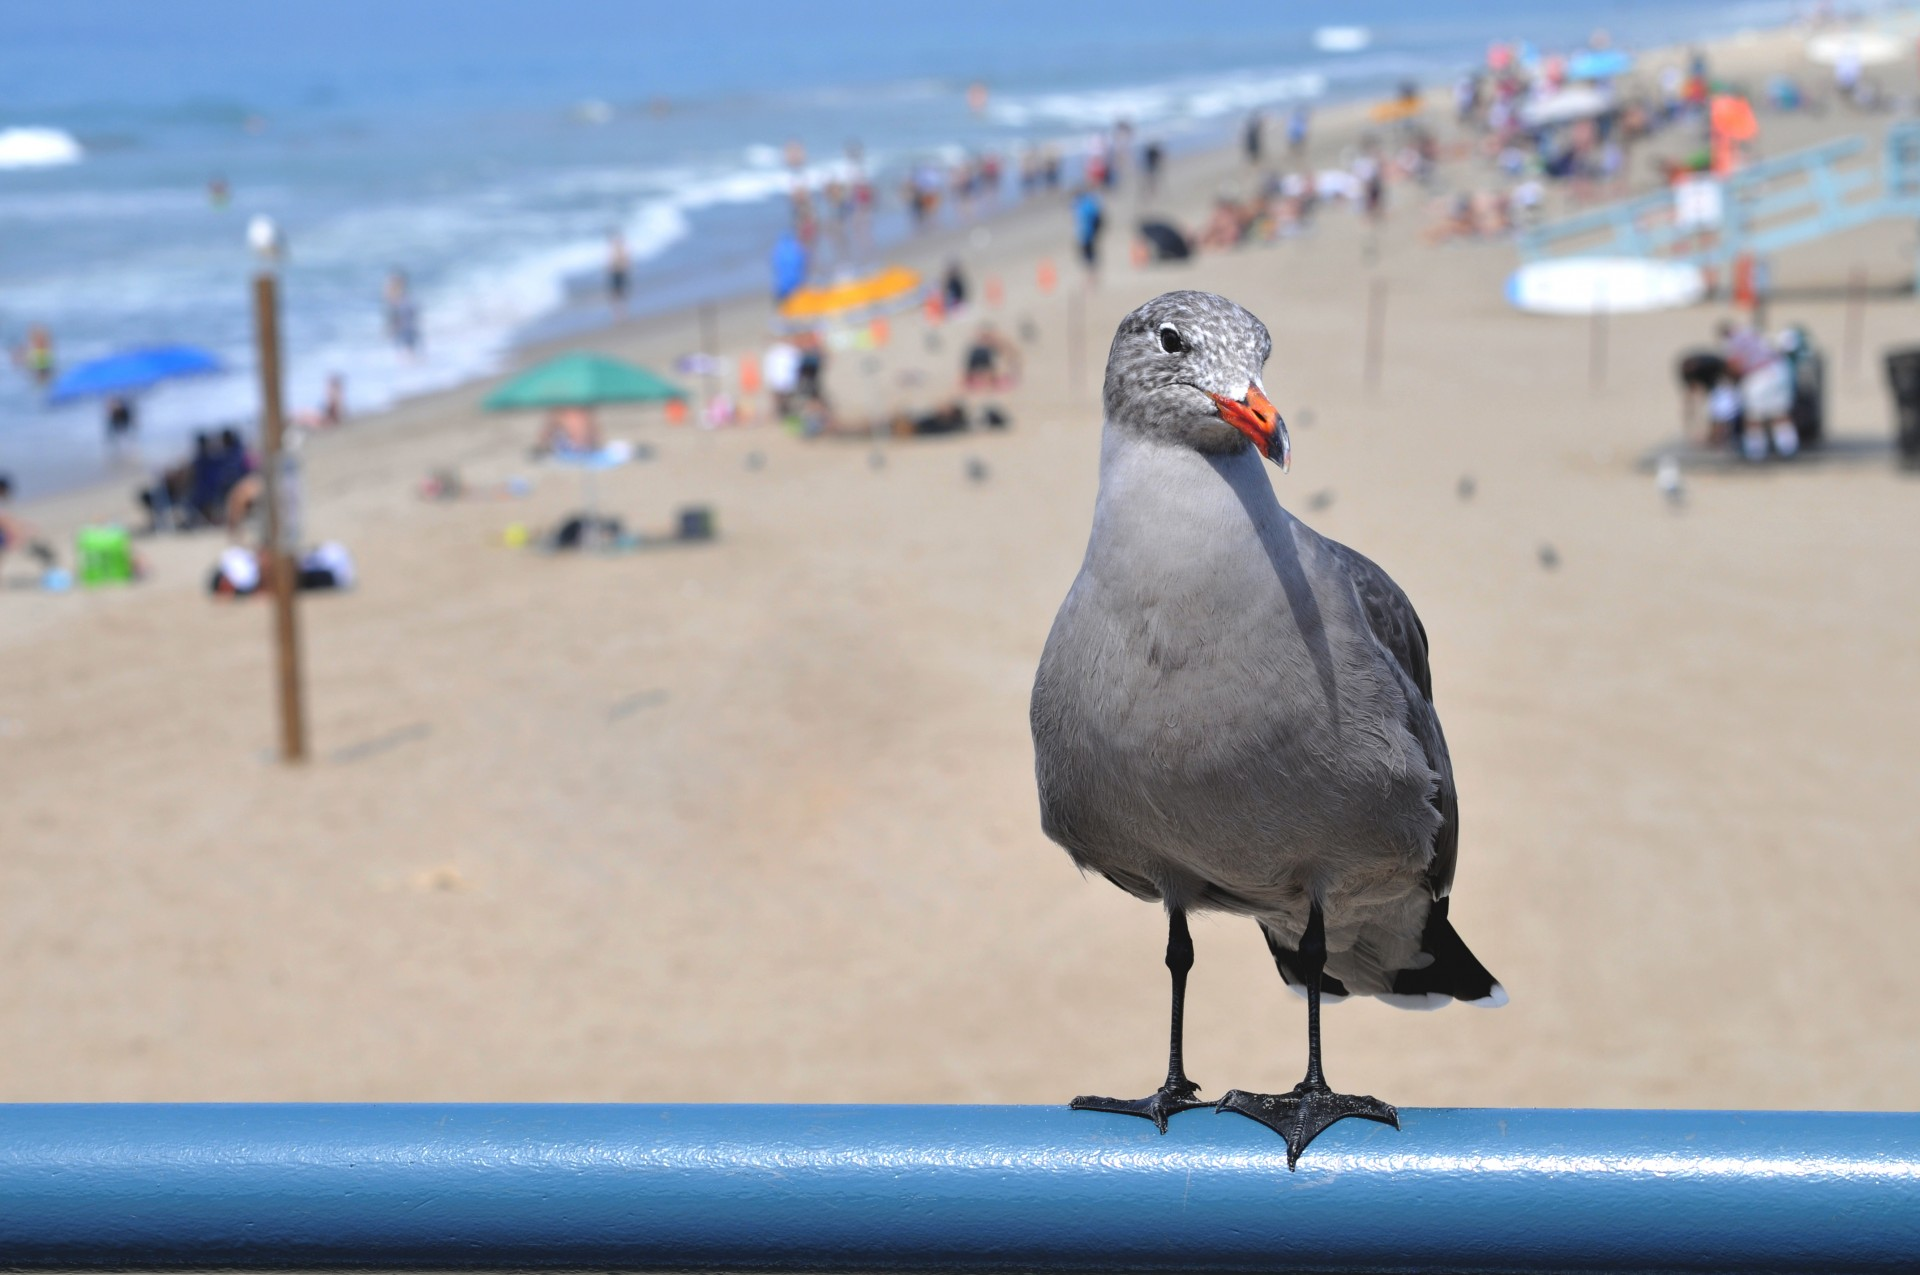 Seagull,sea gull,bird,beach,ocean - free photo from needpix com